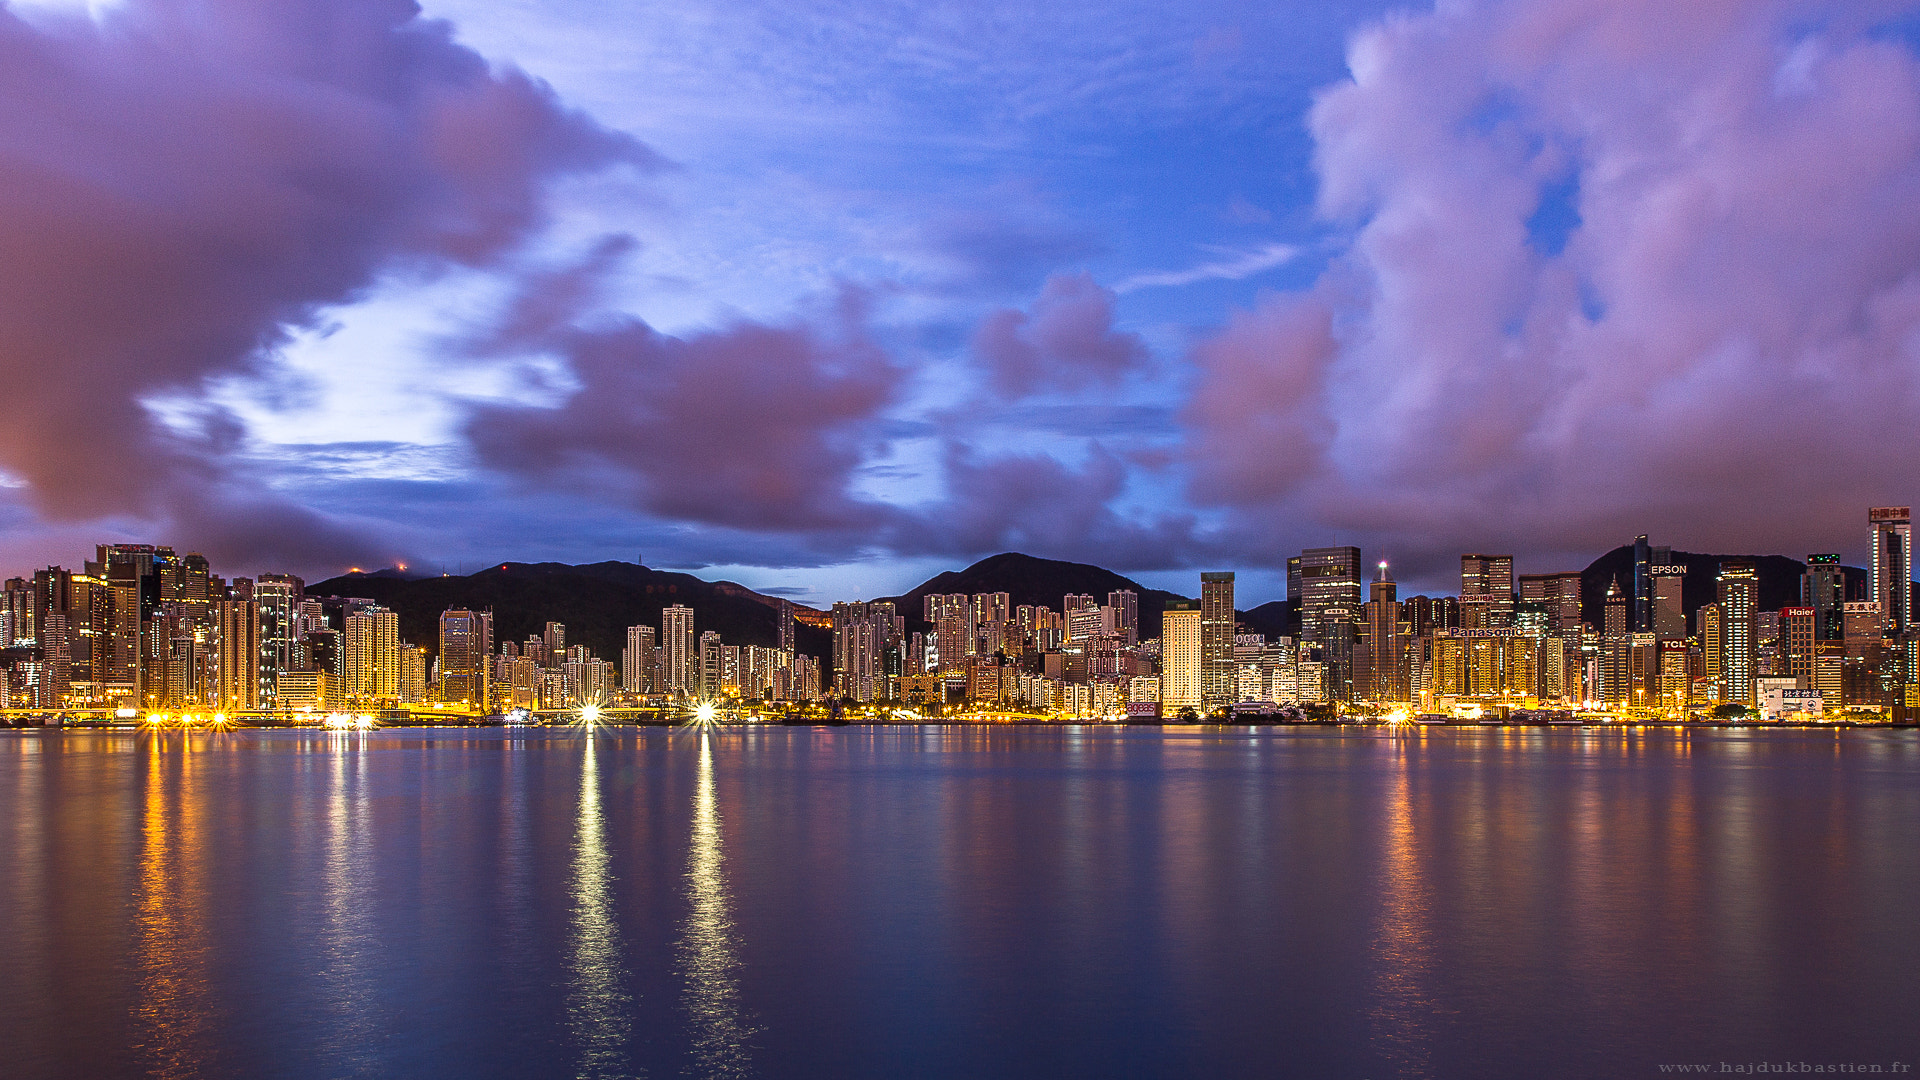 Photograph Hong Kong is waiking up by Bastien HAJDUK on 500px